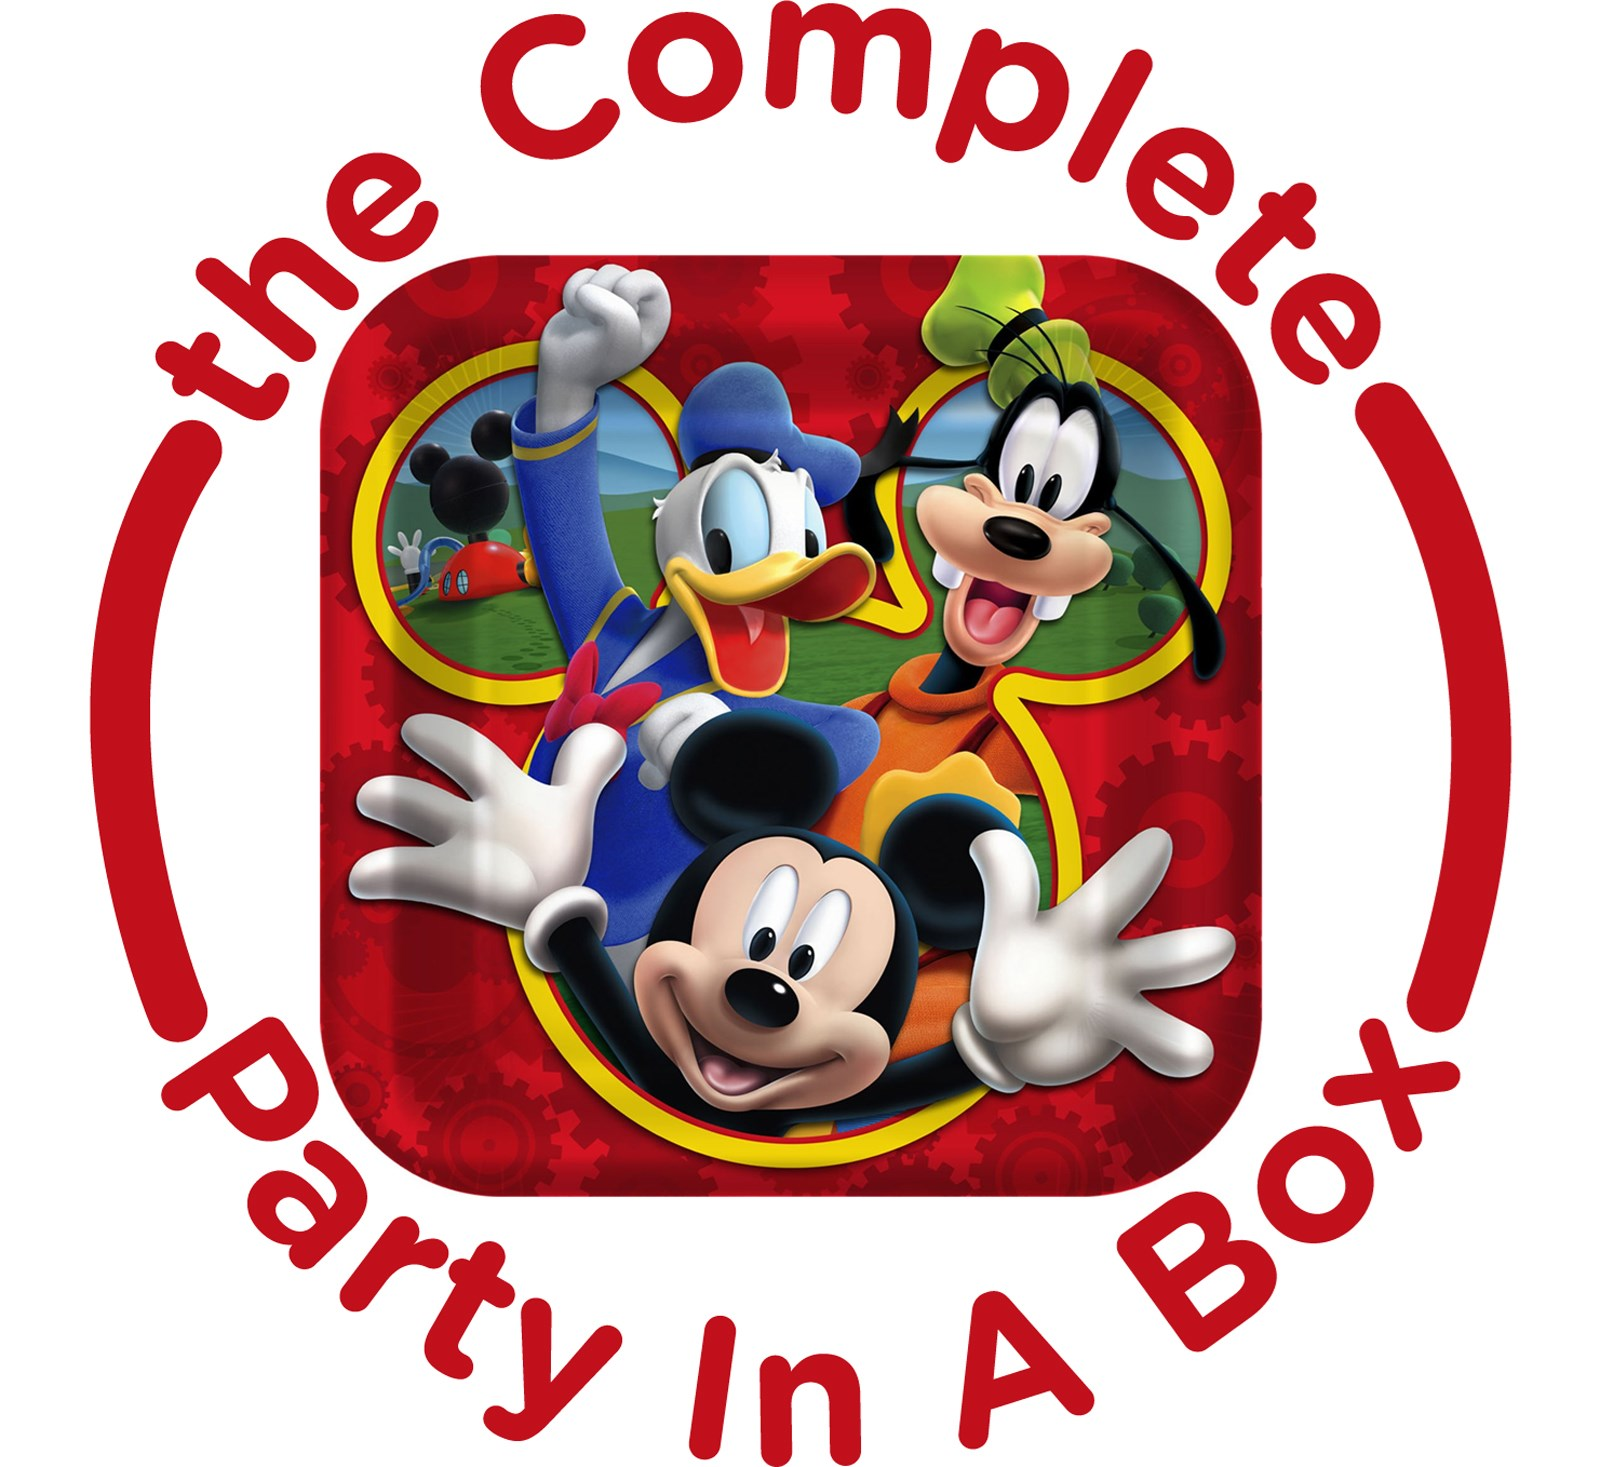 Mickey Mouse Playtime Party in a Box - Deluxe with Favors - 16 Guests